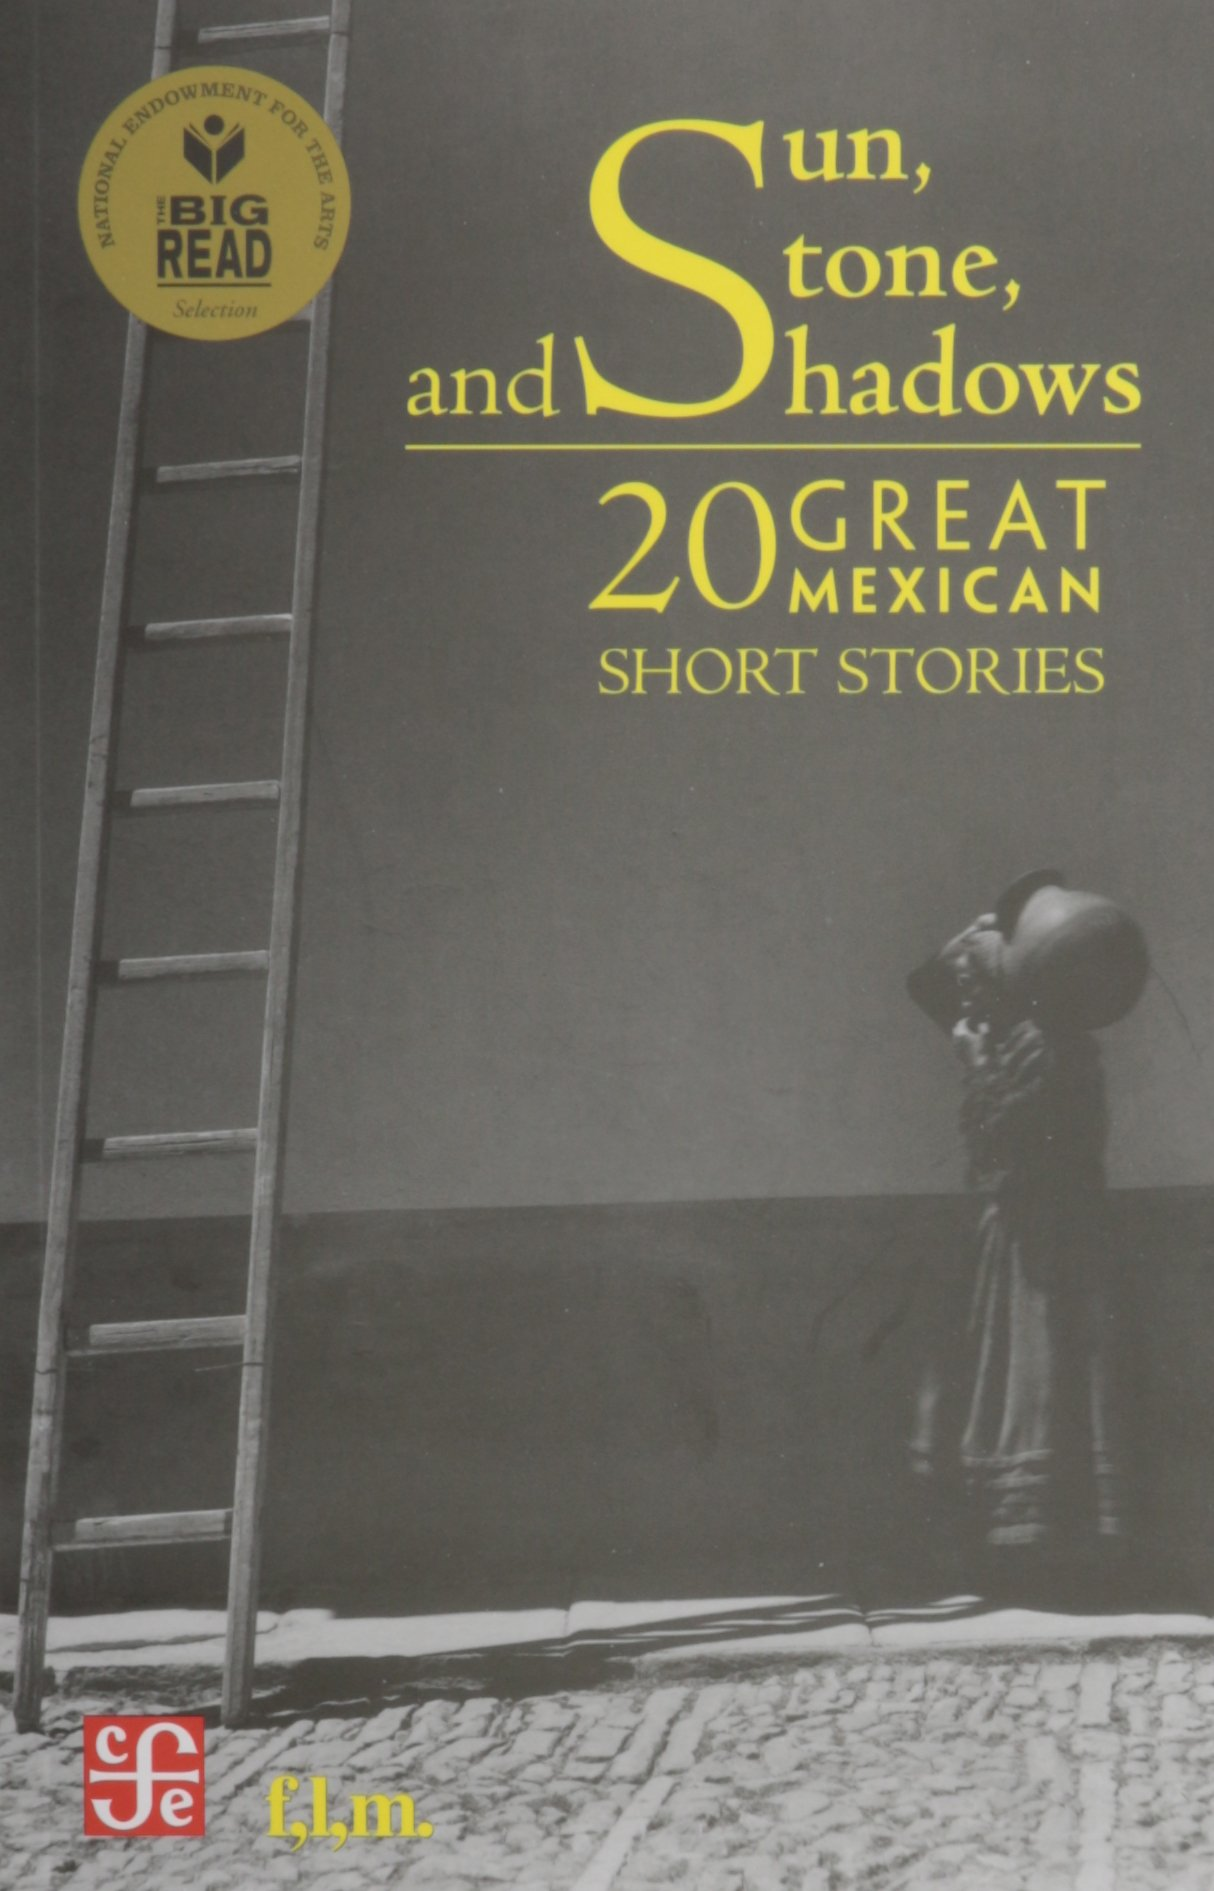 Sun stone and shadows 20 great mexican short stories jorge f sun stone and shadows 20 great mexican short stories jorge f hernandez 9789681685942 amazon books fandeluxe Gallery